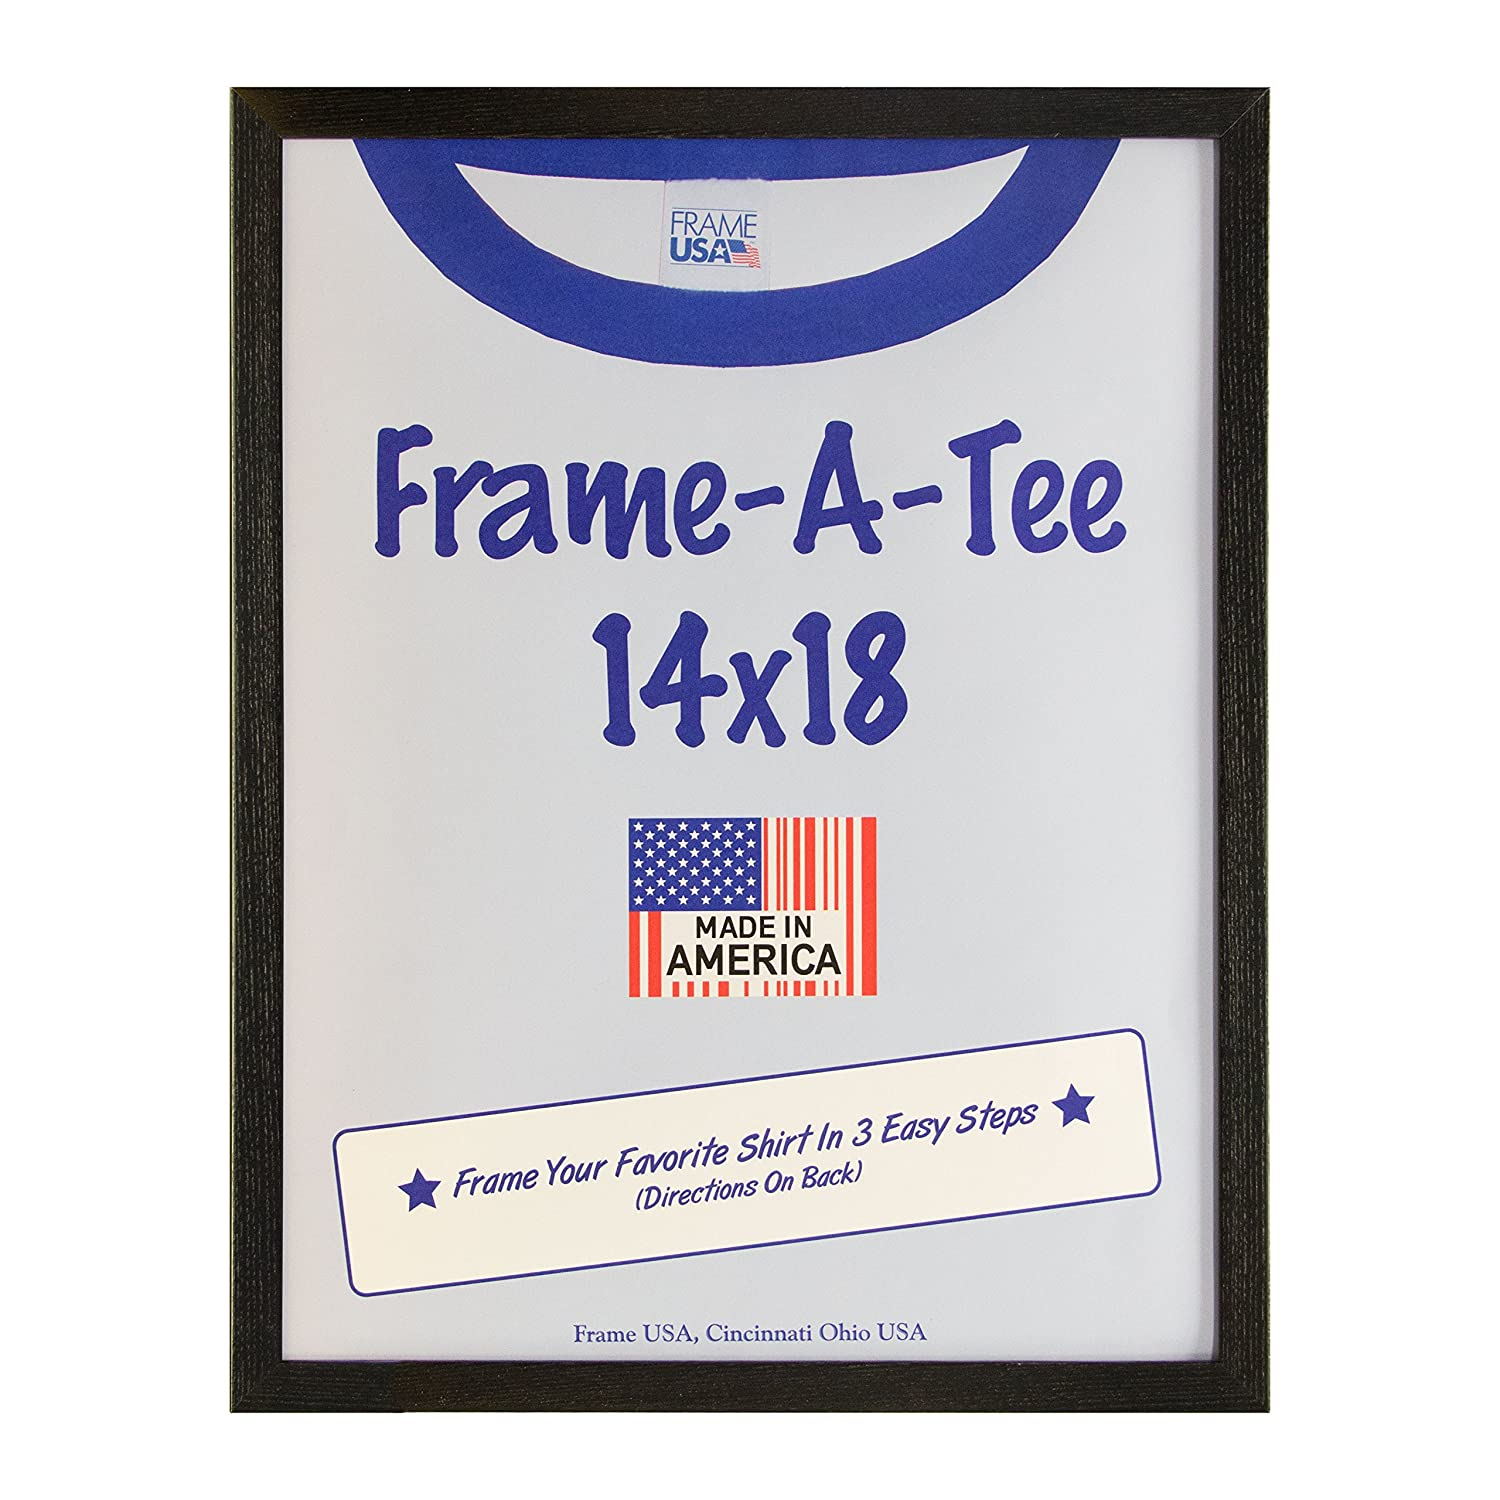 Amazon.com: T-Shirt Frame (14x14, Black): Home & Kitchen